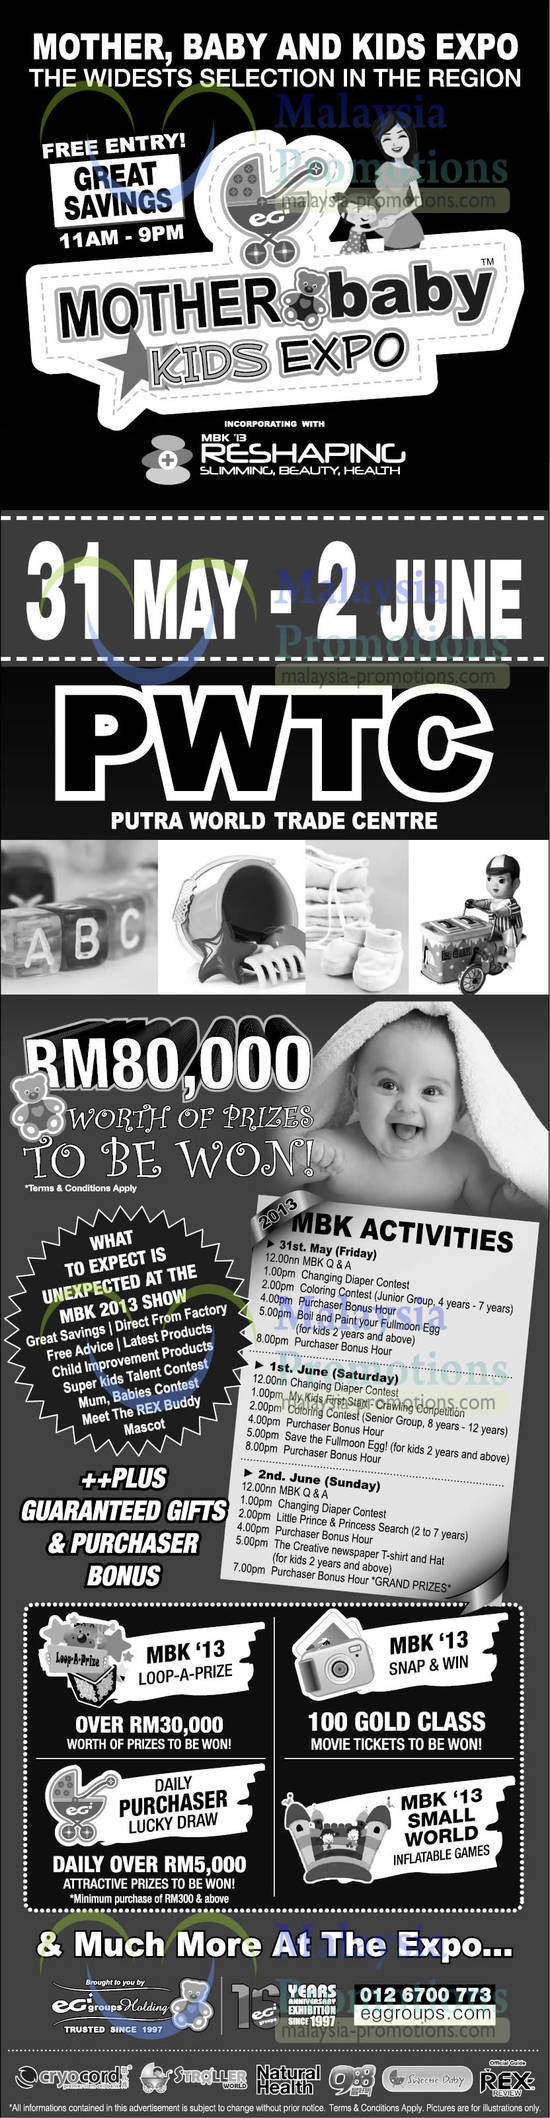 Mother, Baby n Kids Expo 27 May 2013